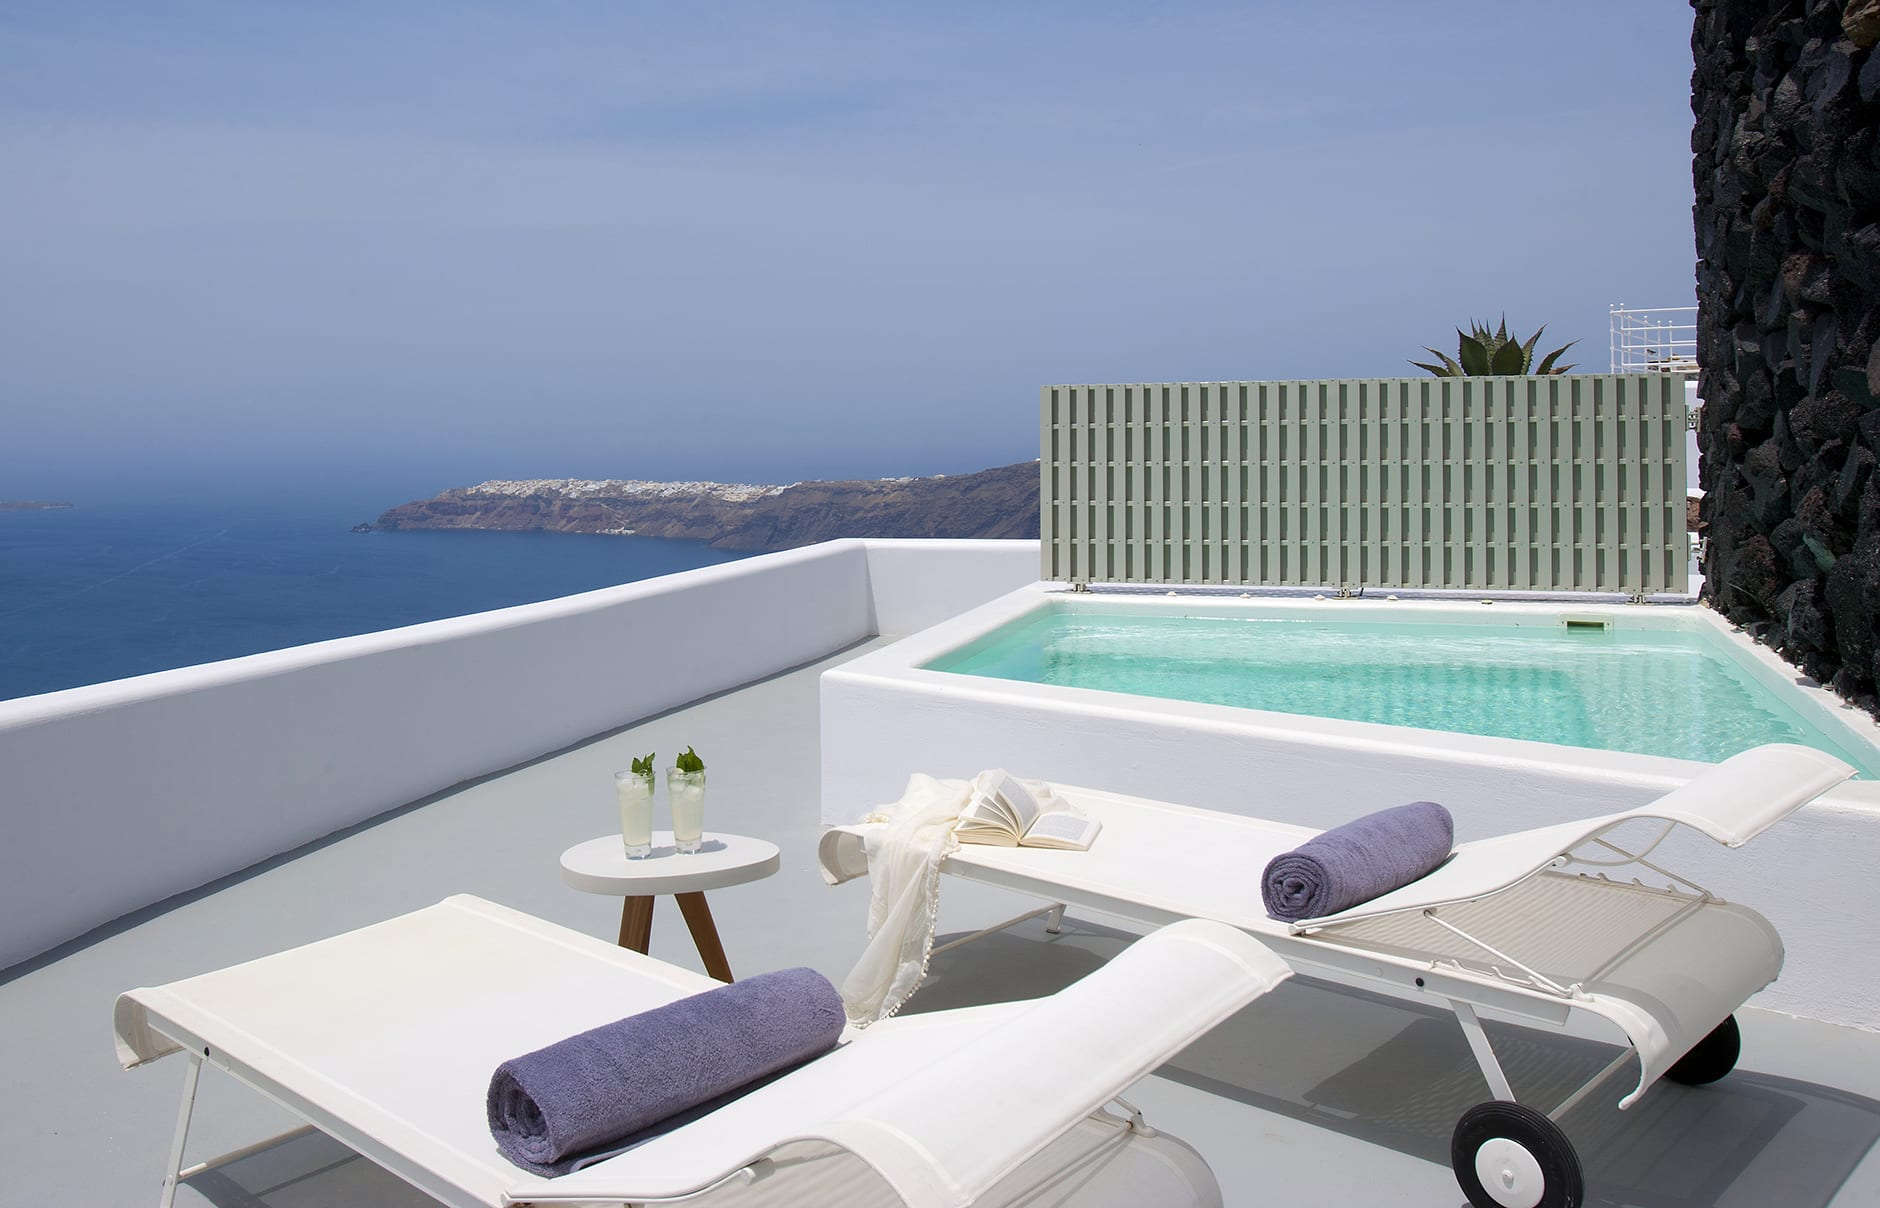 VIP Suite Terrace. Grace Hotel Santorini, Greece. Luxury Hotel Review by TravelPlusStyle. Photo © Auberge Resorts Collection